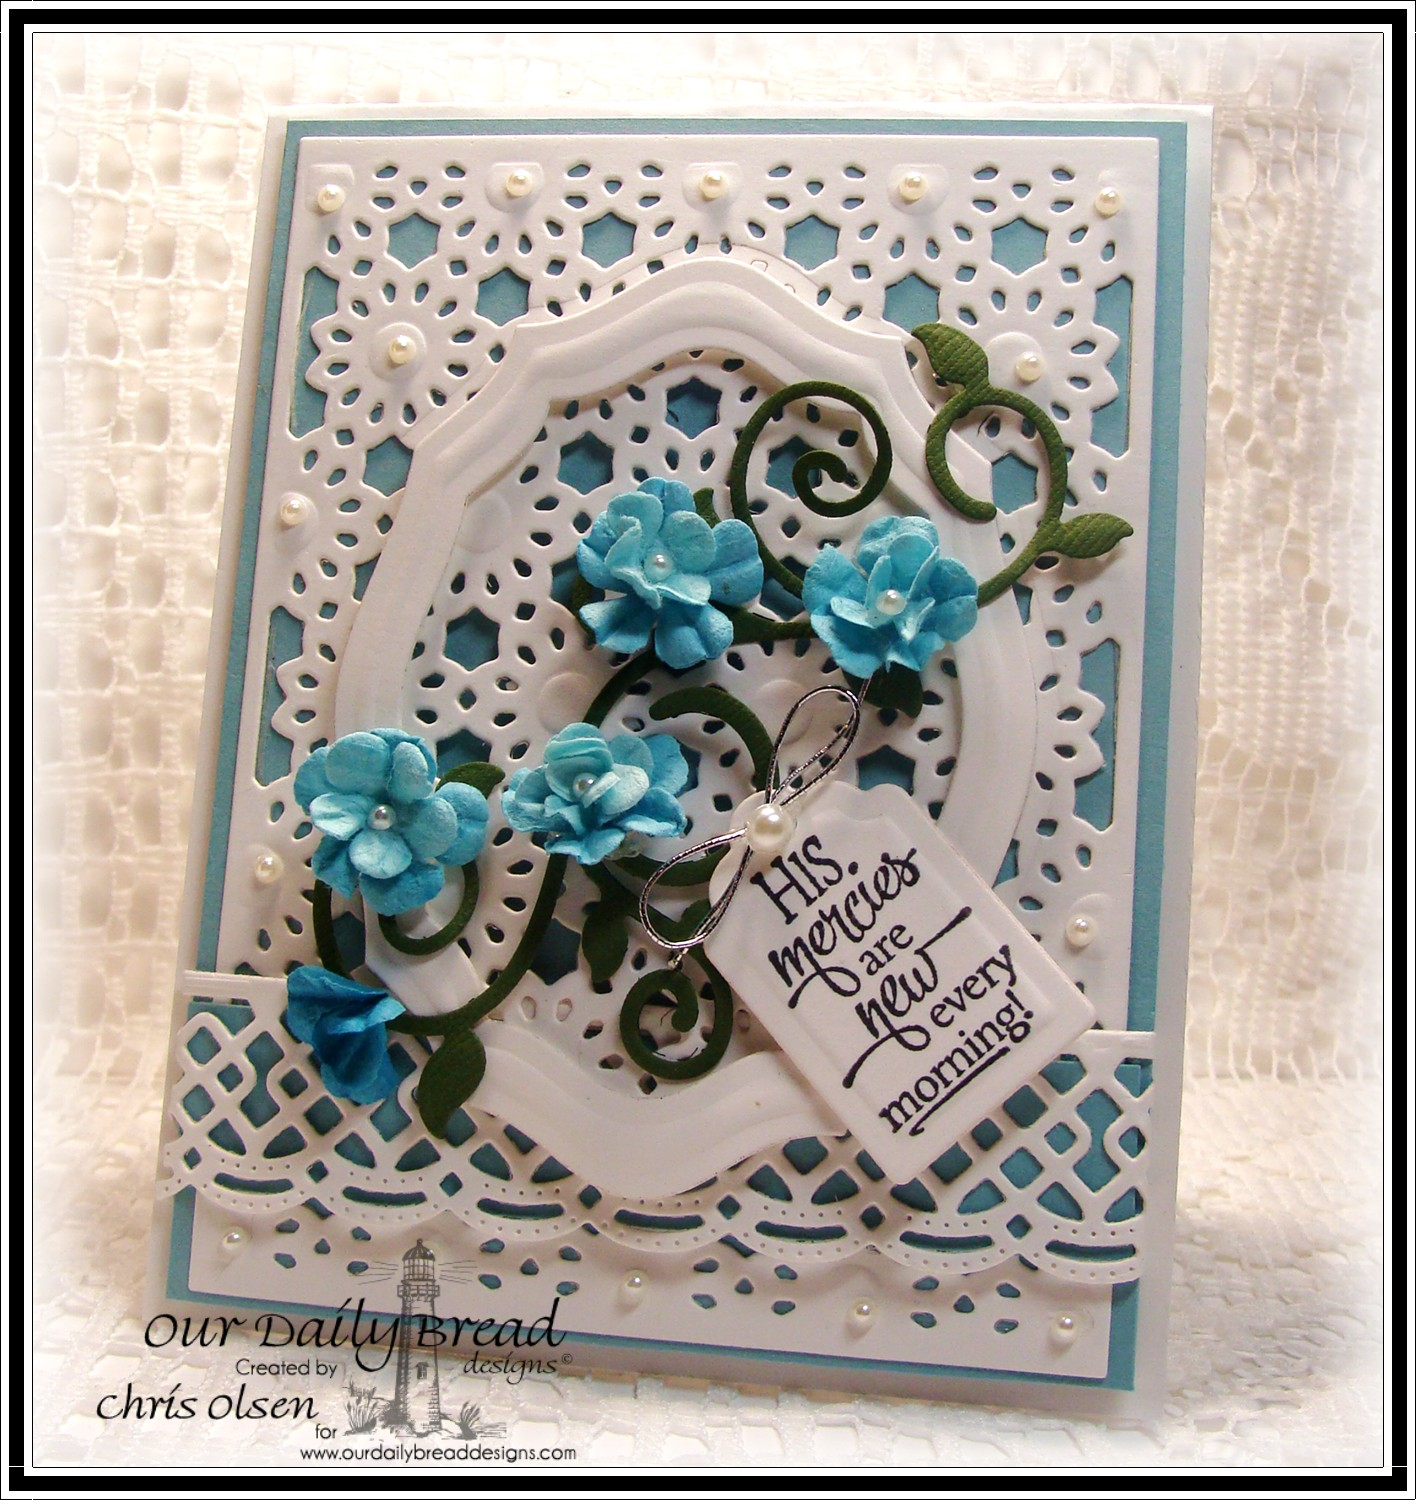 Stamps - Our Daily Bread Designs Sentiment Collection 3, ODBD Custom Fancy Foliage Dies, ODBD Custom Daisy Chain Background Die, ODBD Custom Beautiful Borders Dies, ODBD Elegant Oval Die, ODBD Custom Recipe Card and Tags Dies